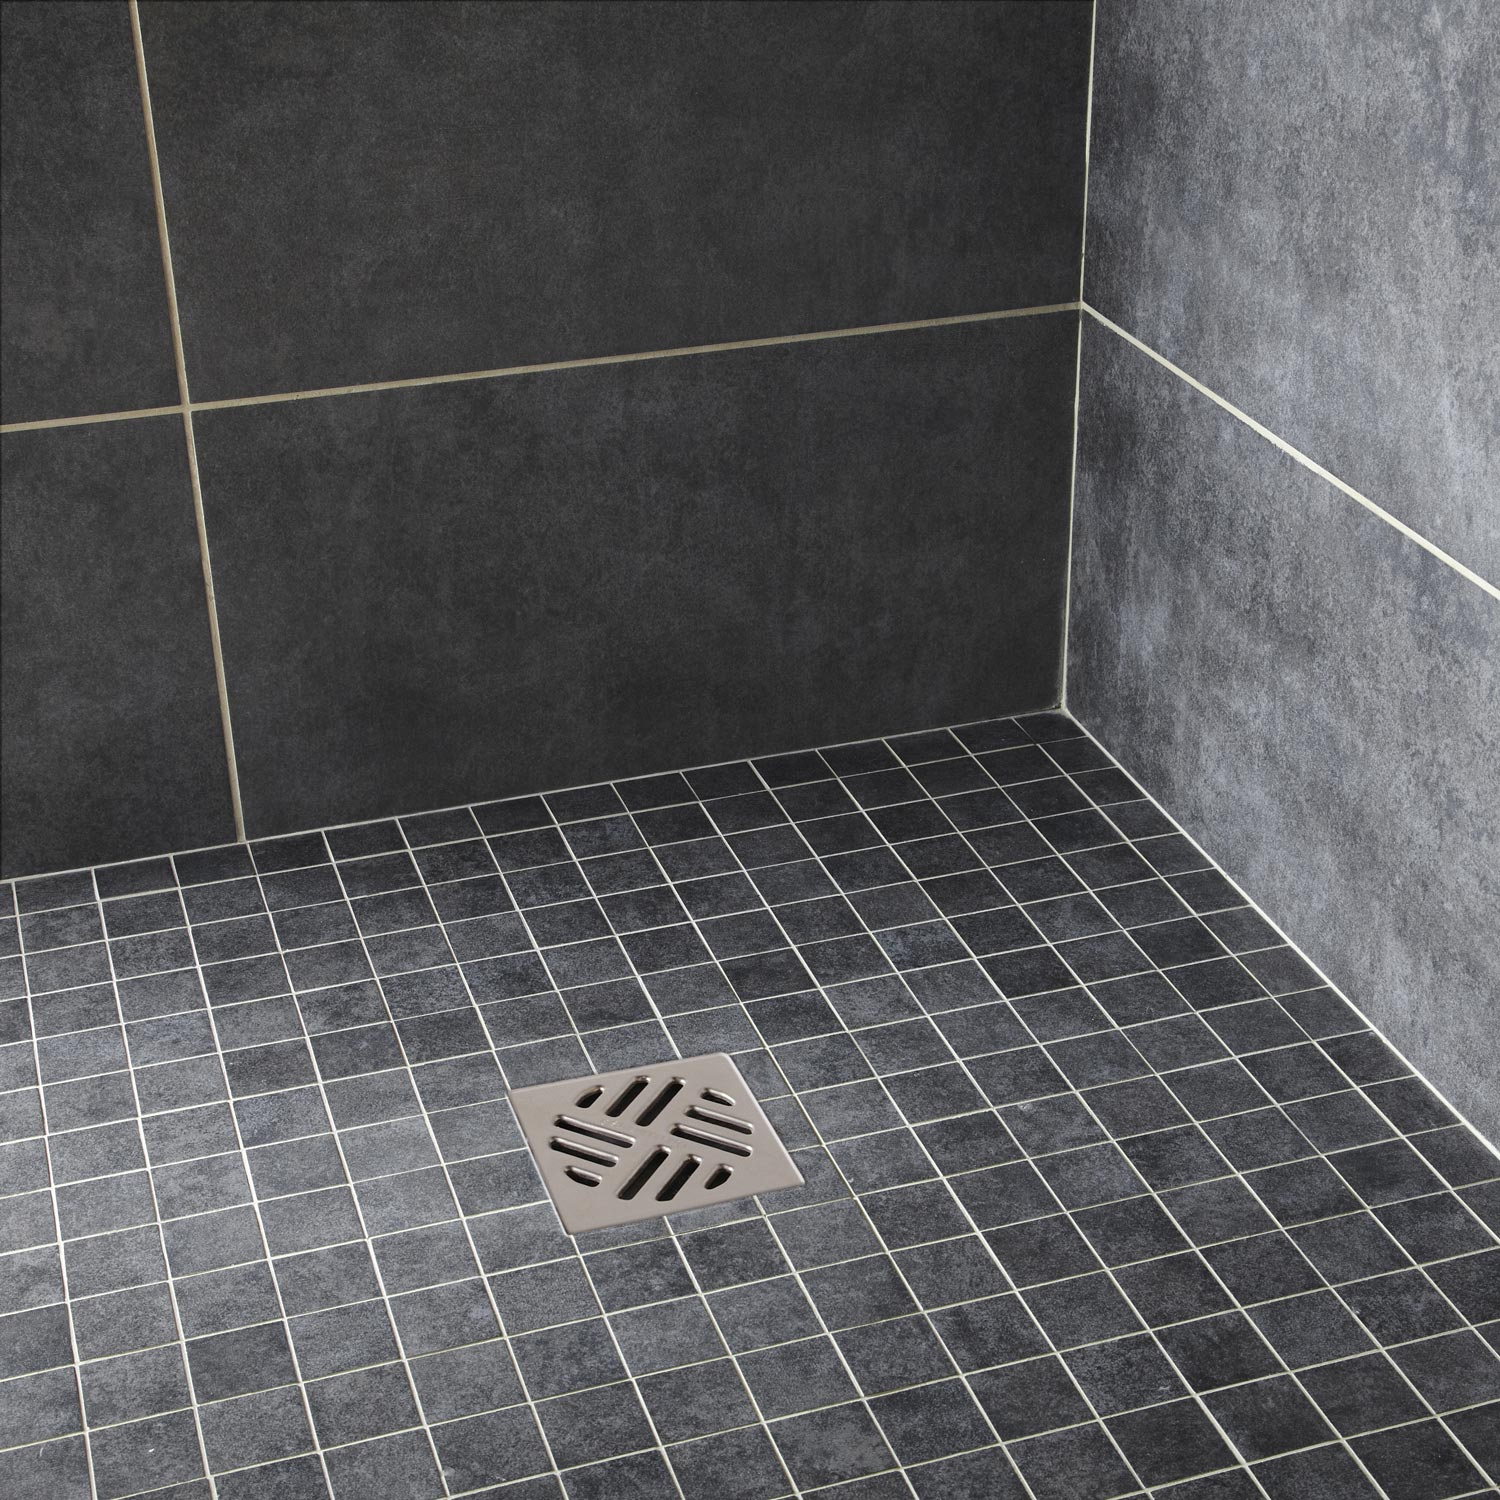 Salle de bain travertin leroy merlin - Leroy merlin colle carrelage ...